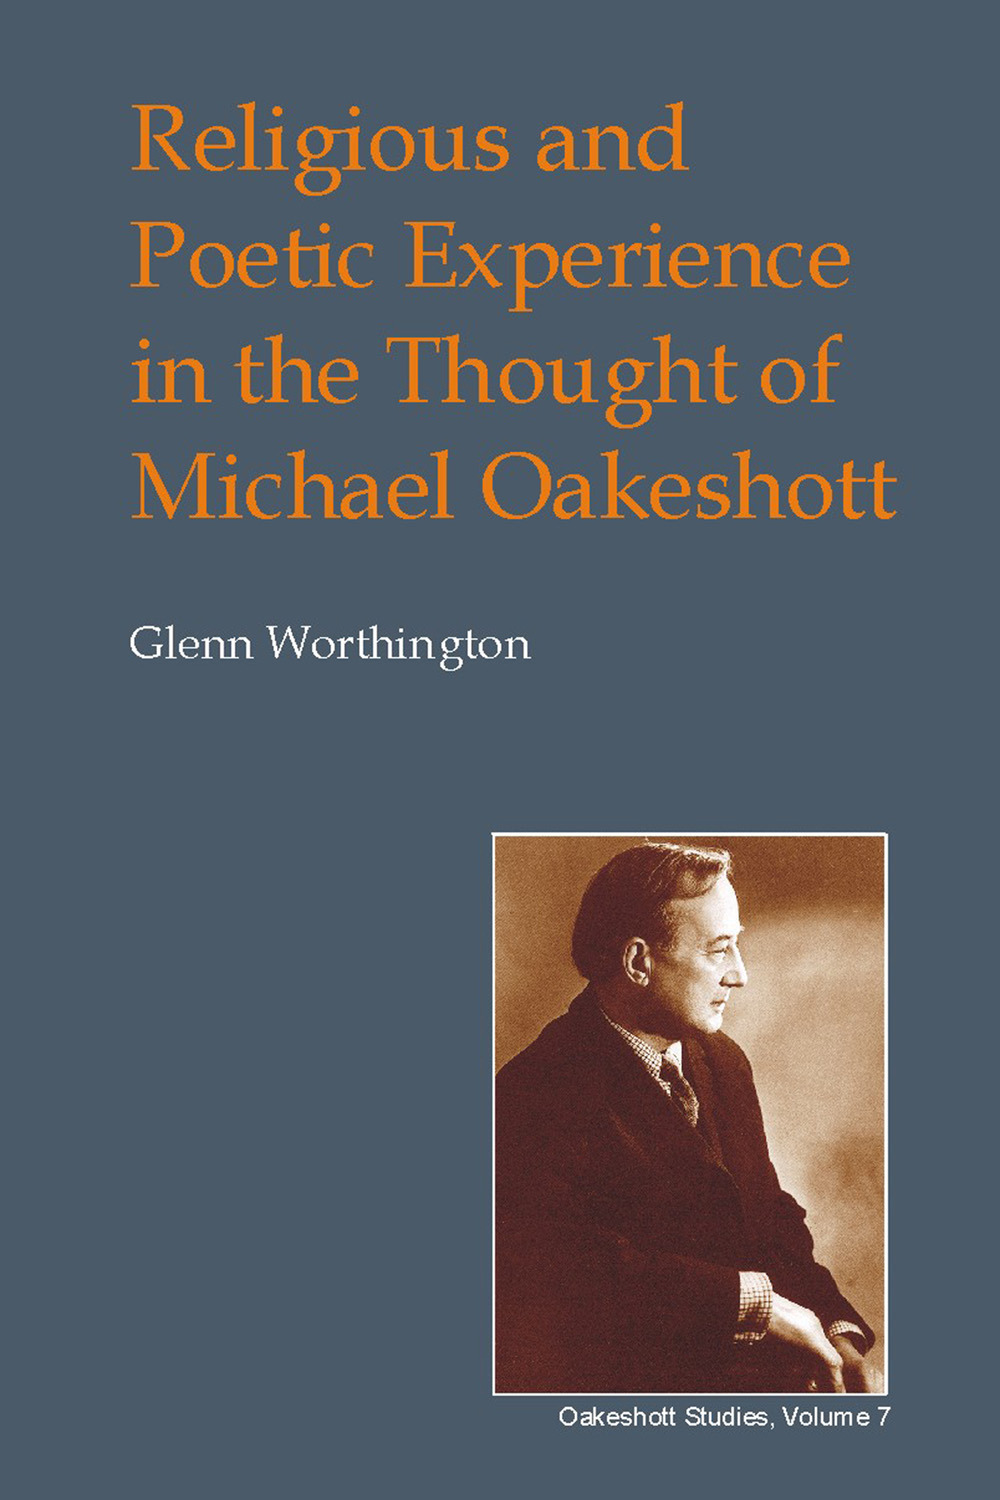 Worthington, Glenn - Religious and Poetic Experience in the Thought of Michael Oakeshott, ebook